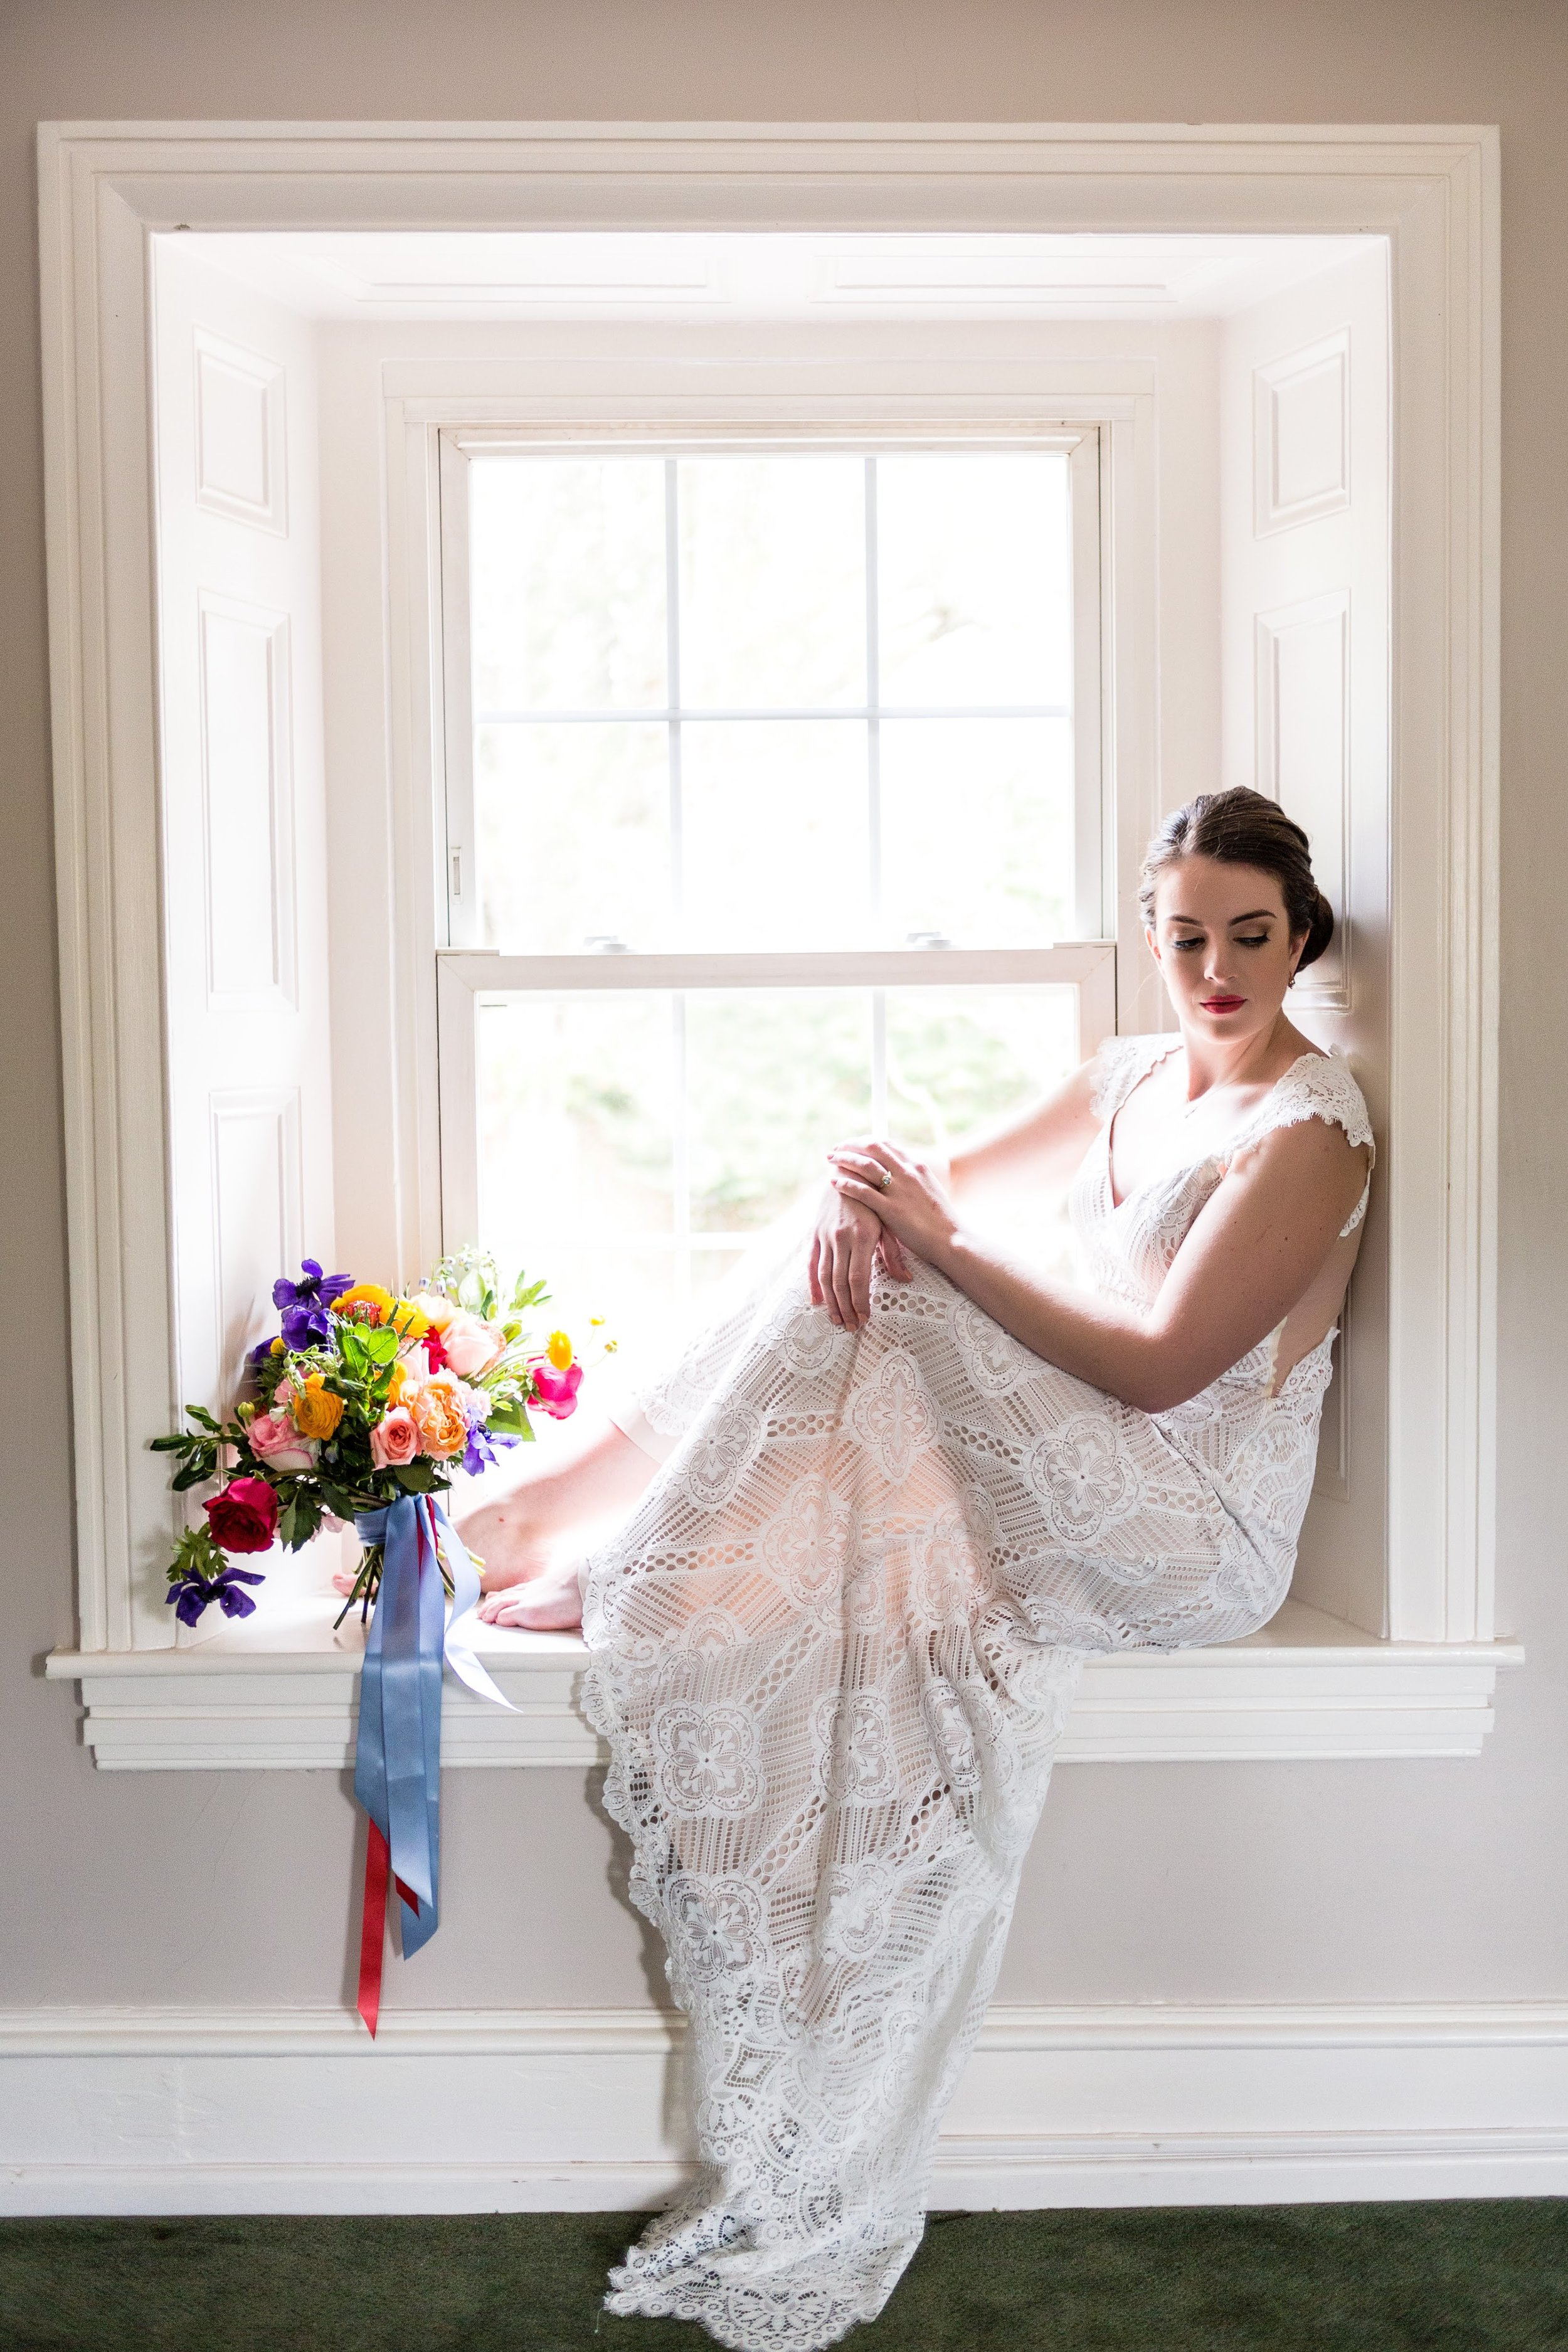 Bride in Window with Colorful Bouquet